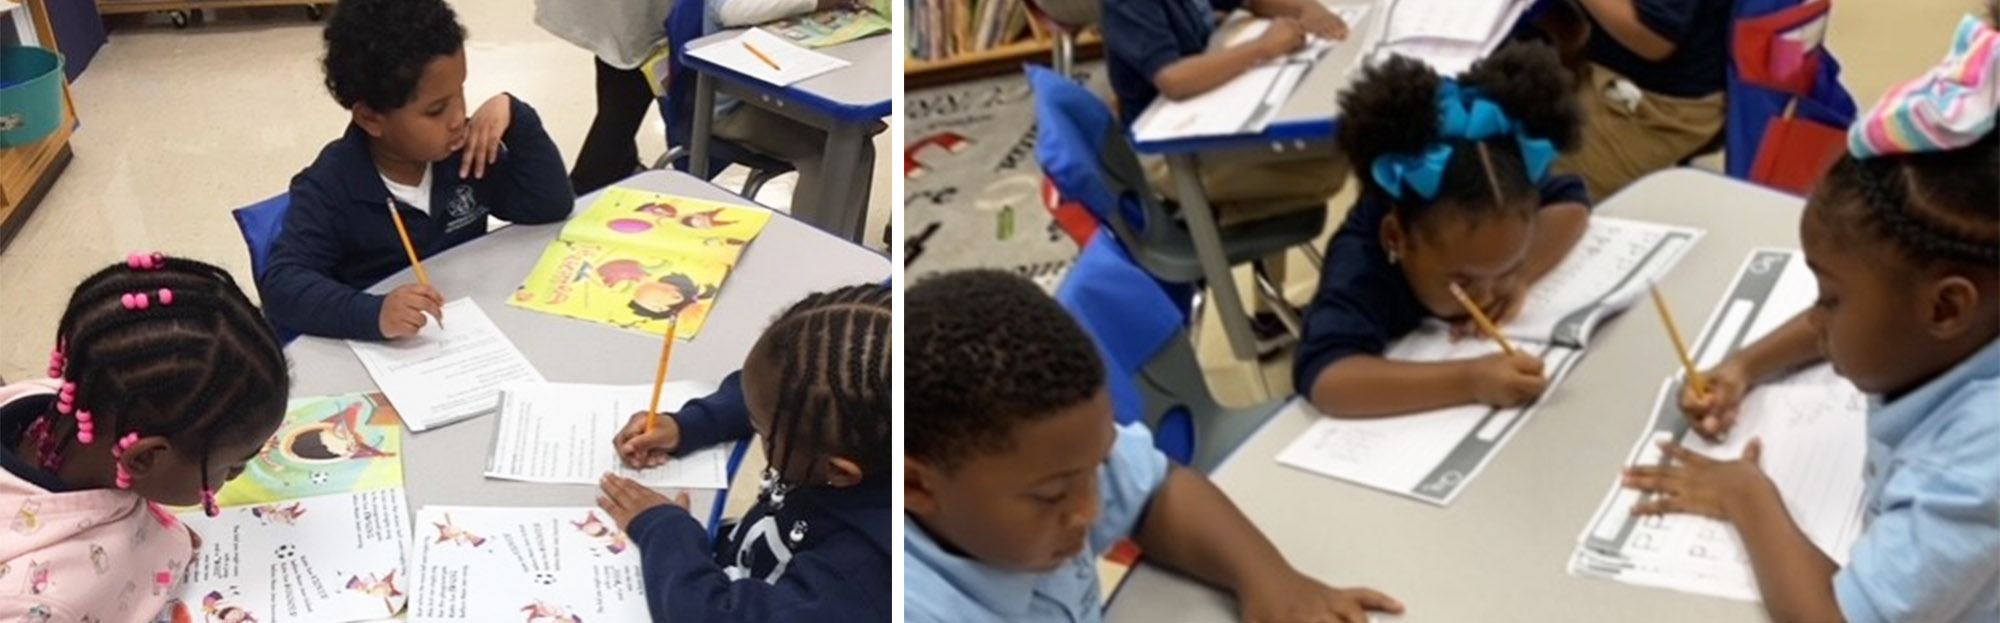 Students working in groups in the classroom